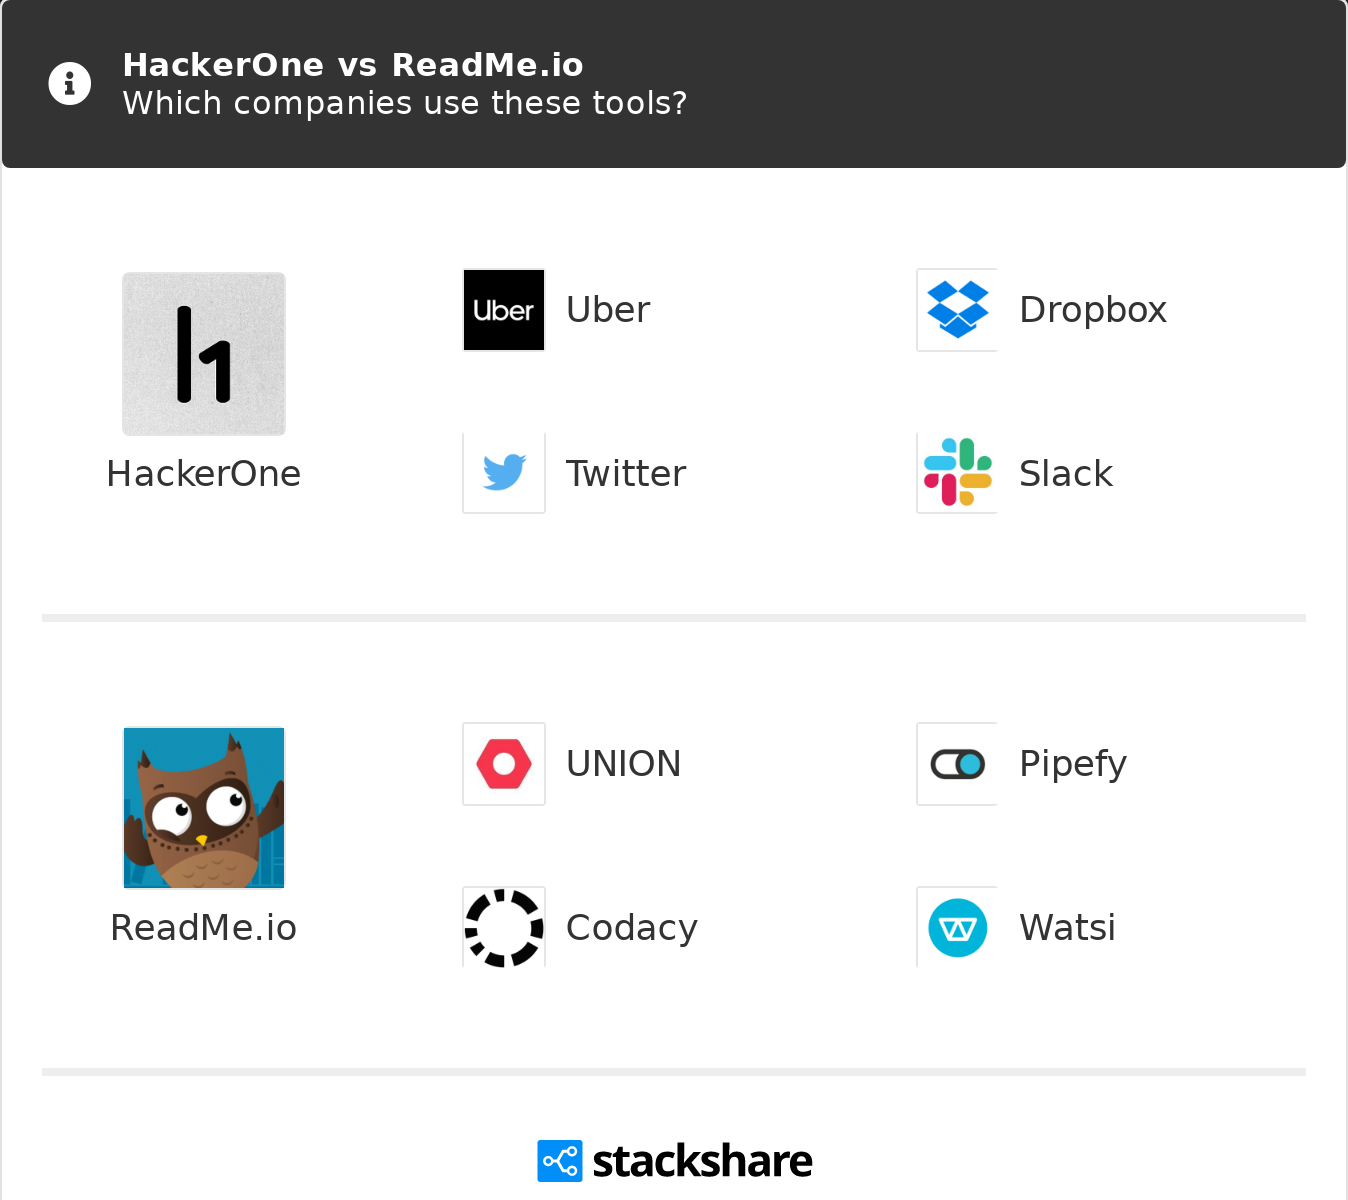 HackerOne vs ReadMe io   What are the differences?